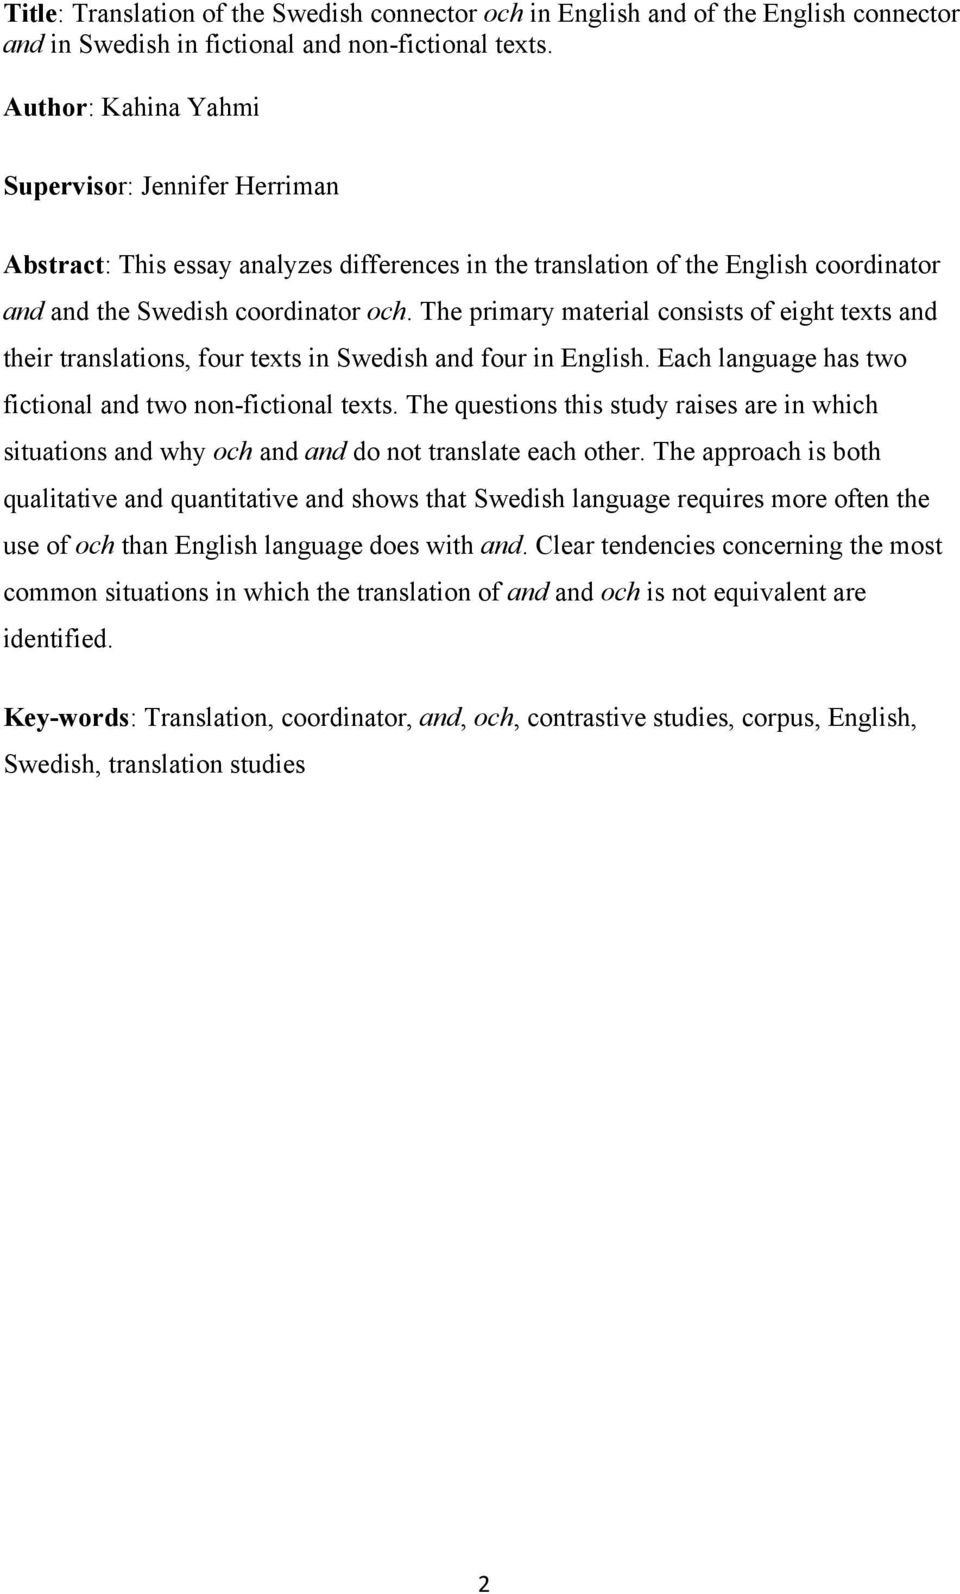 The primary material consists of eight texts and their translations, four texts in Swedish and four in English. Each language has two fictional and two non-fictional texts.